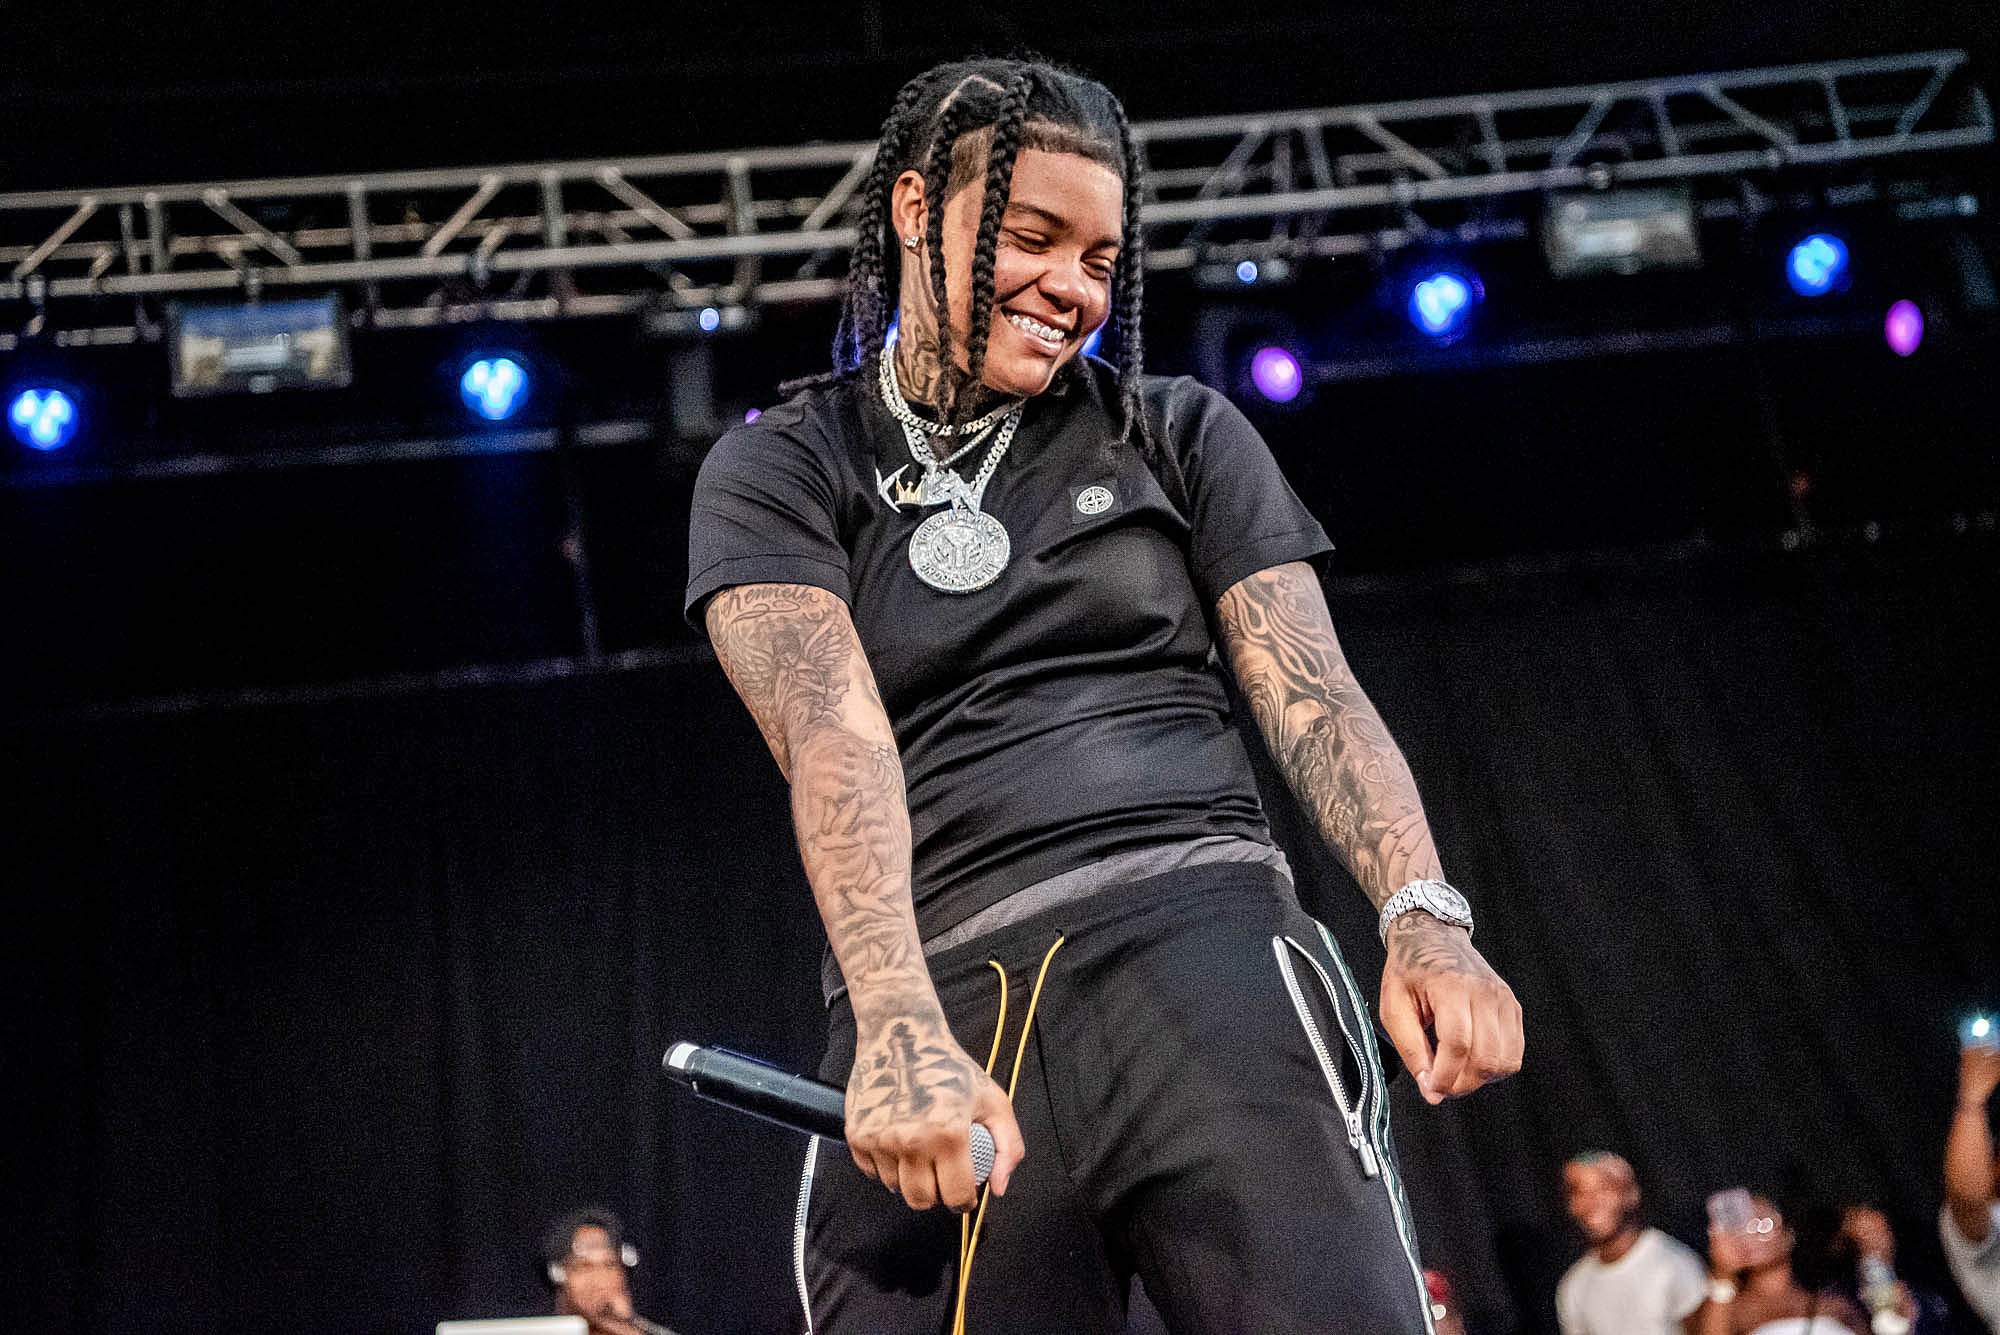 Young M.A at SummerStage in Betsy Head Park